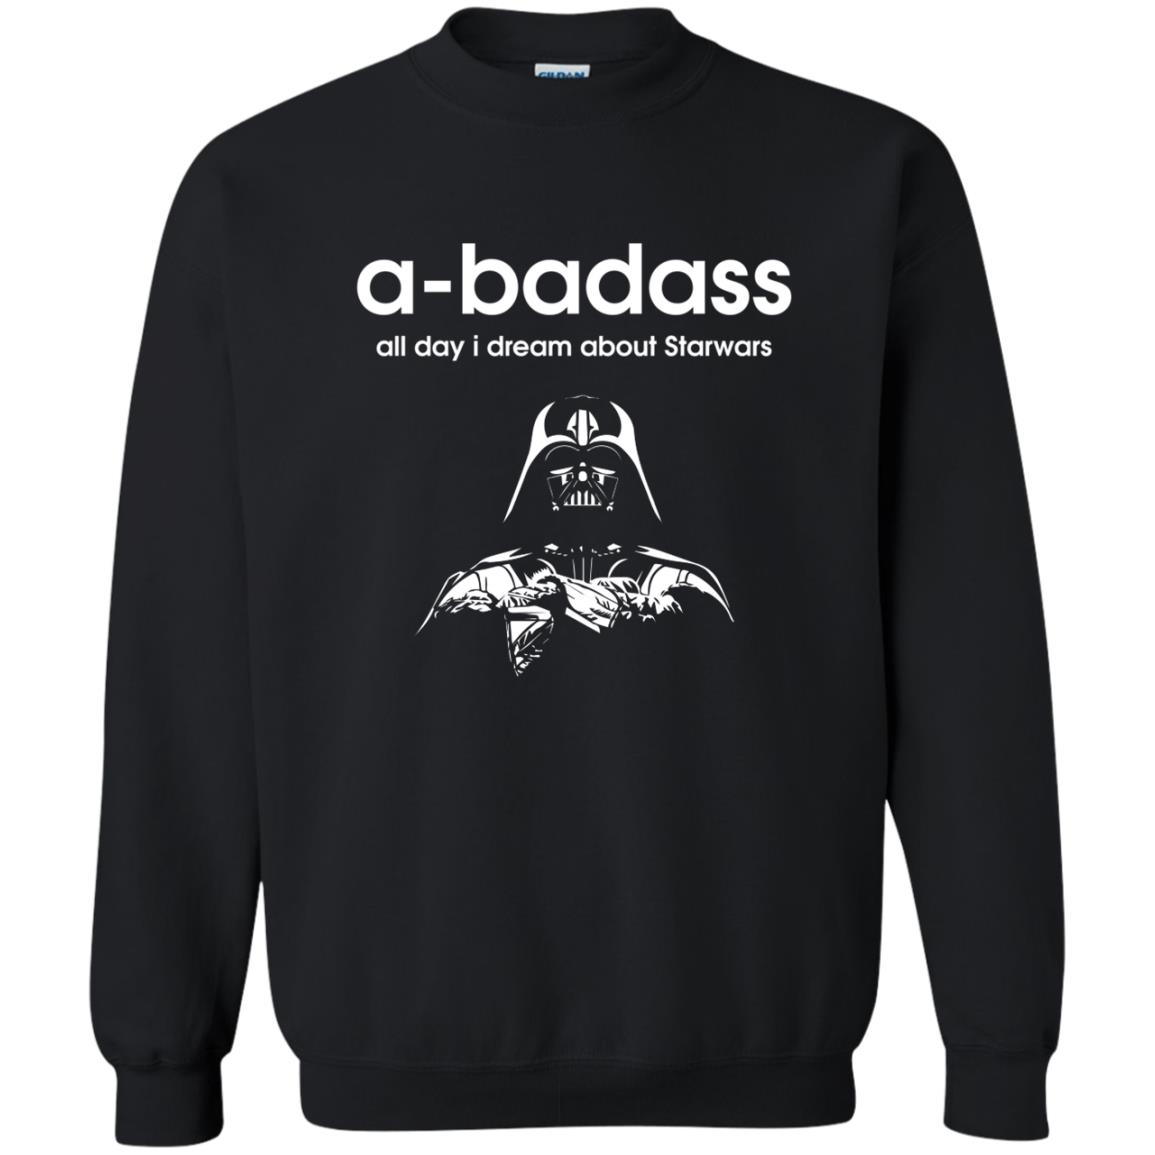 image 1188 - A-badass all day i dream about Starwars shirt, hoodie, tank